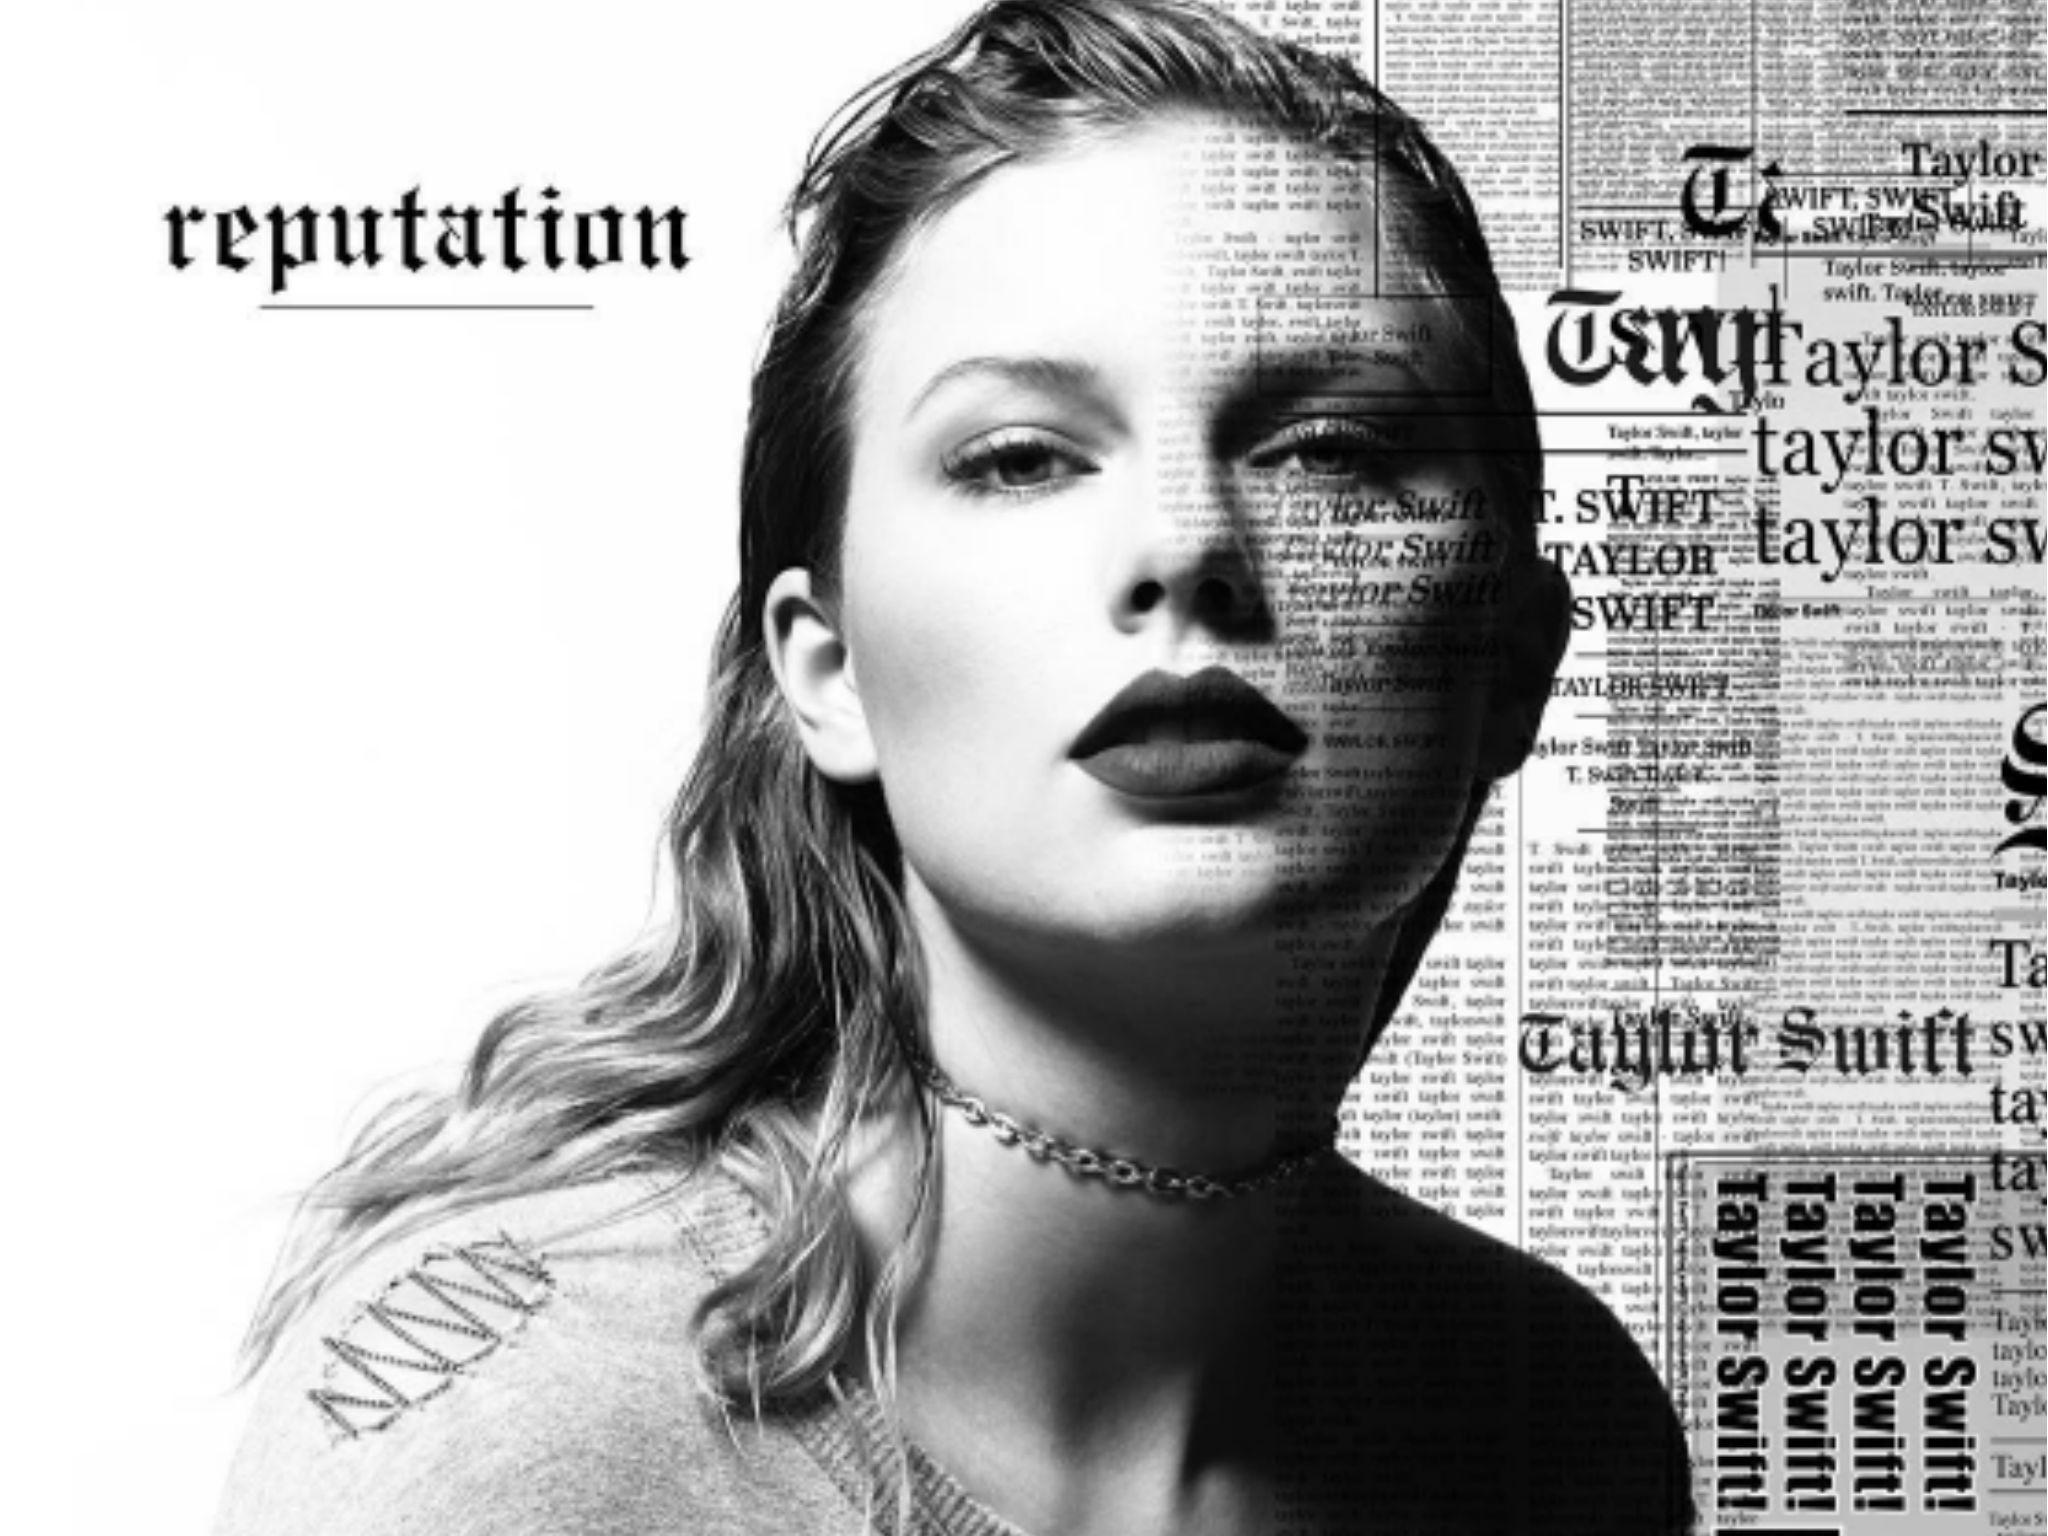 Taylor Swift Reputation Album Artwork